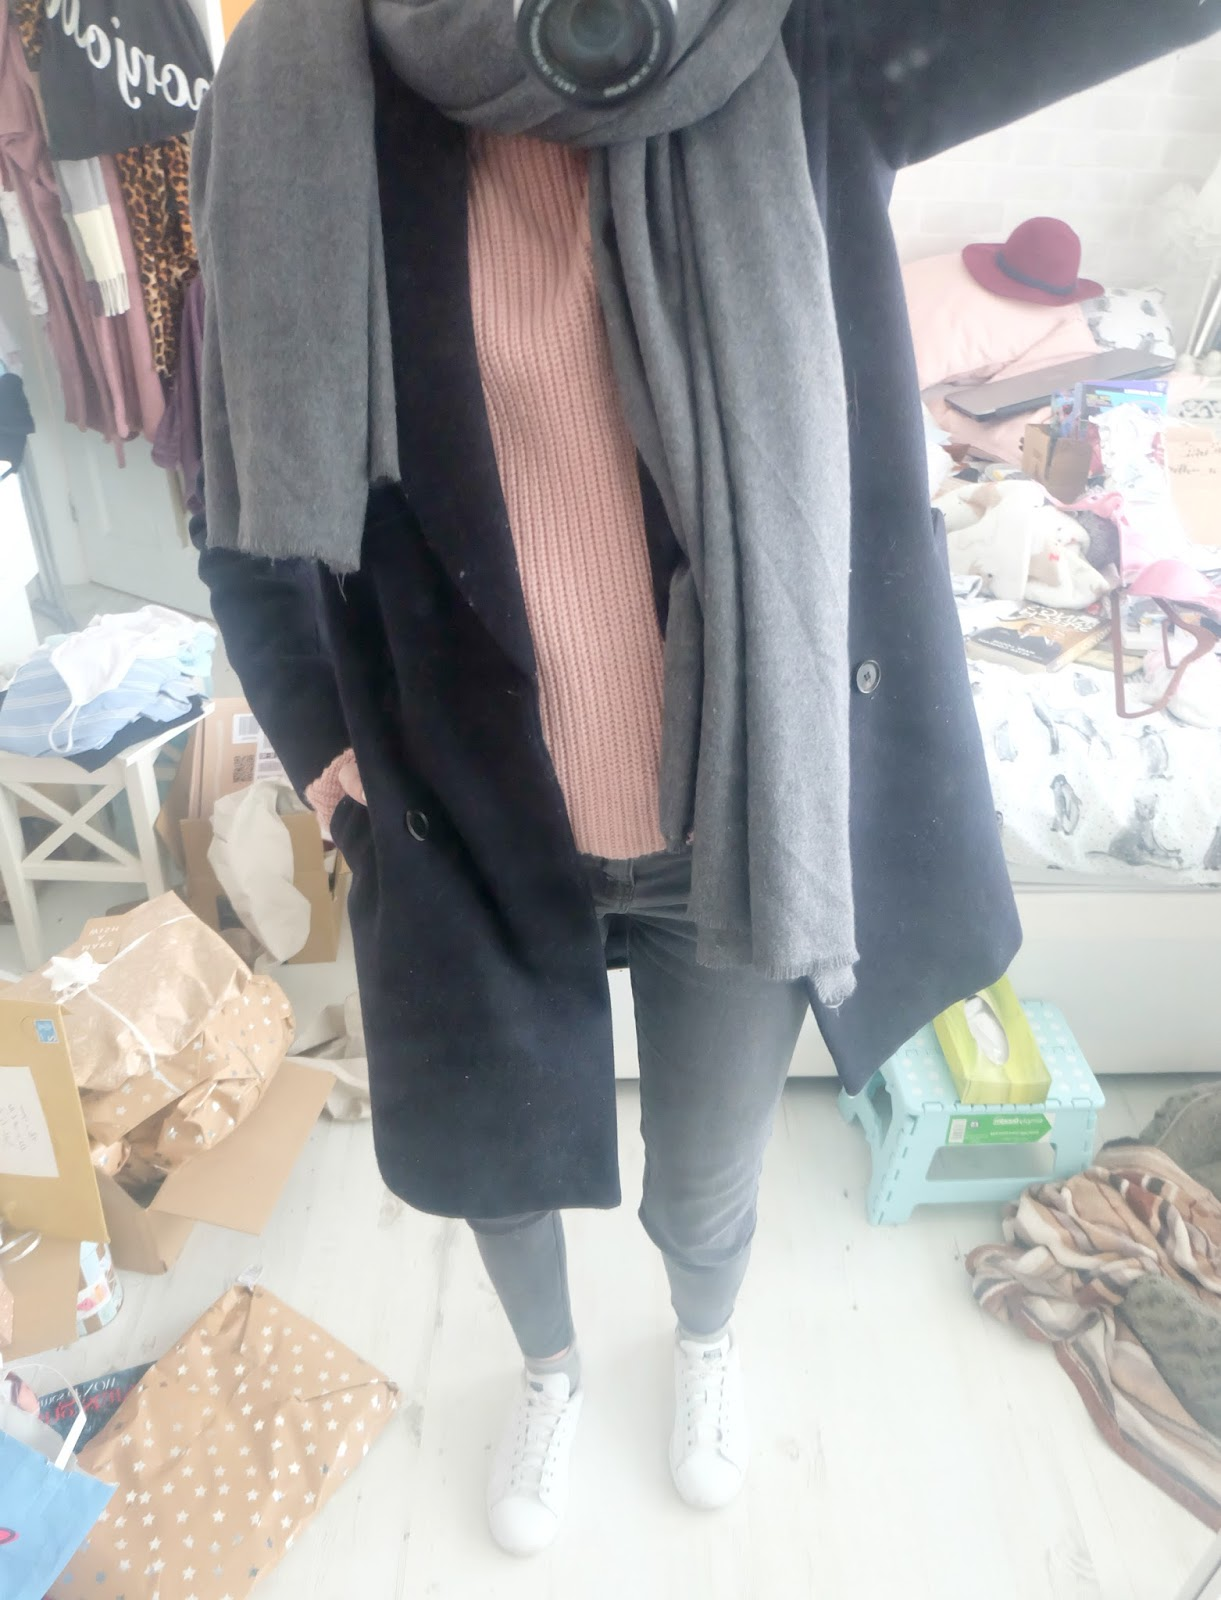 zara navy peacoat, pink and navy outfit, stan smith outfit, stan smith adidas, grey zara jeans, ultimate chunky jumper asos,